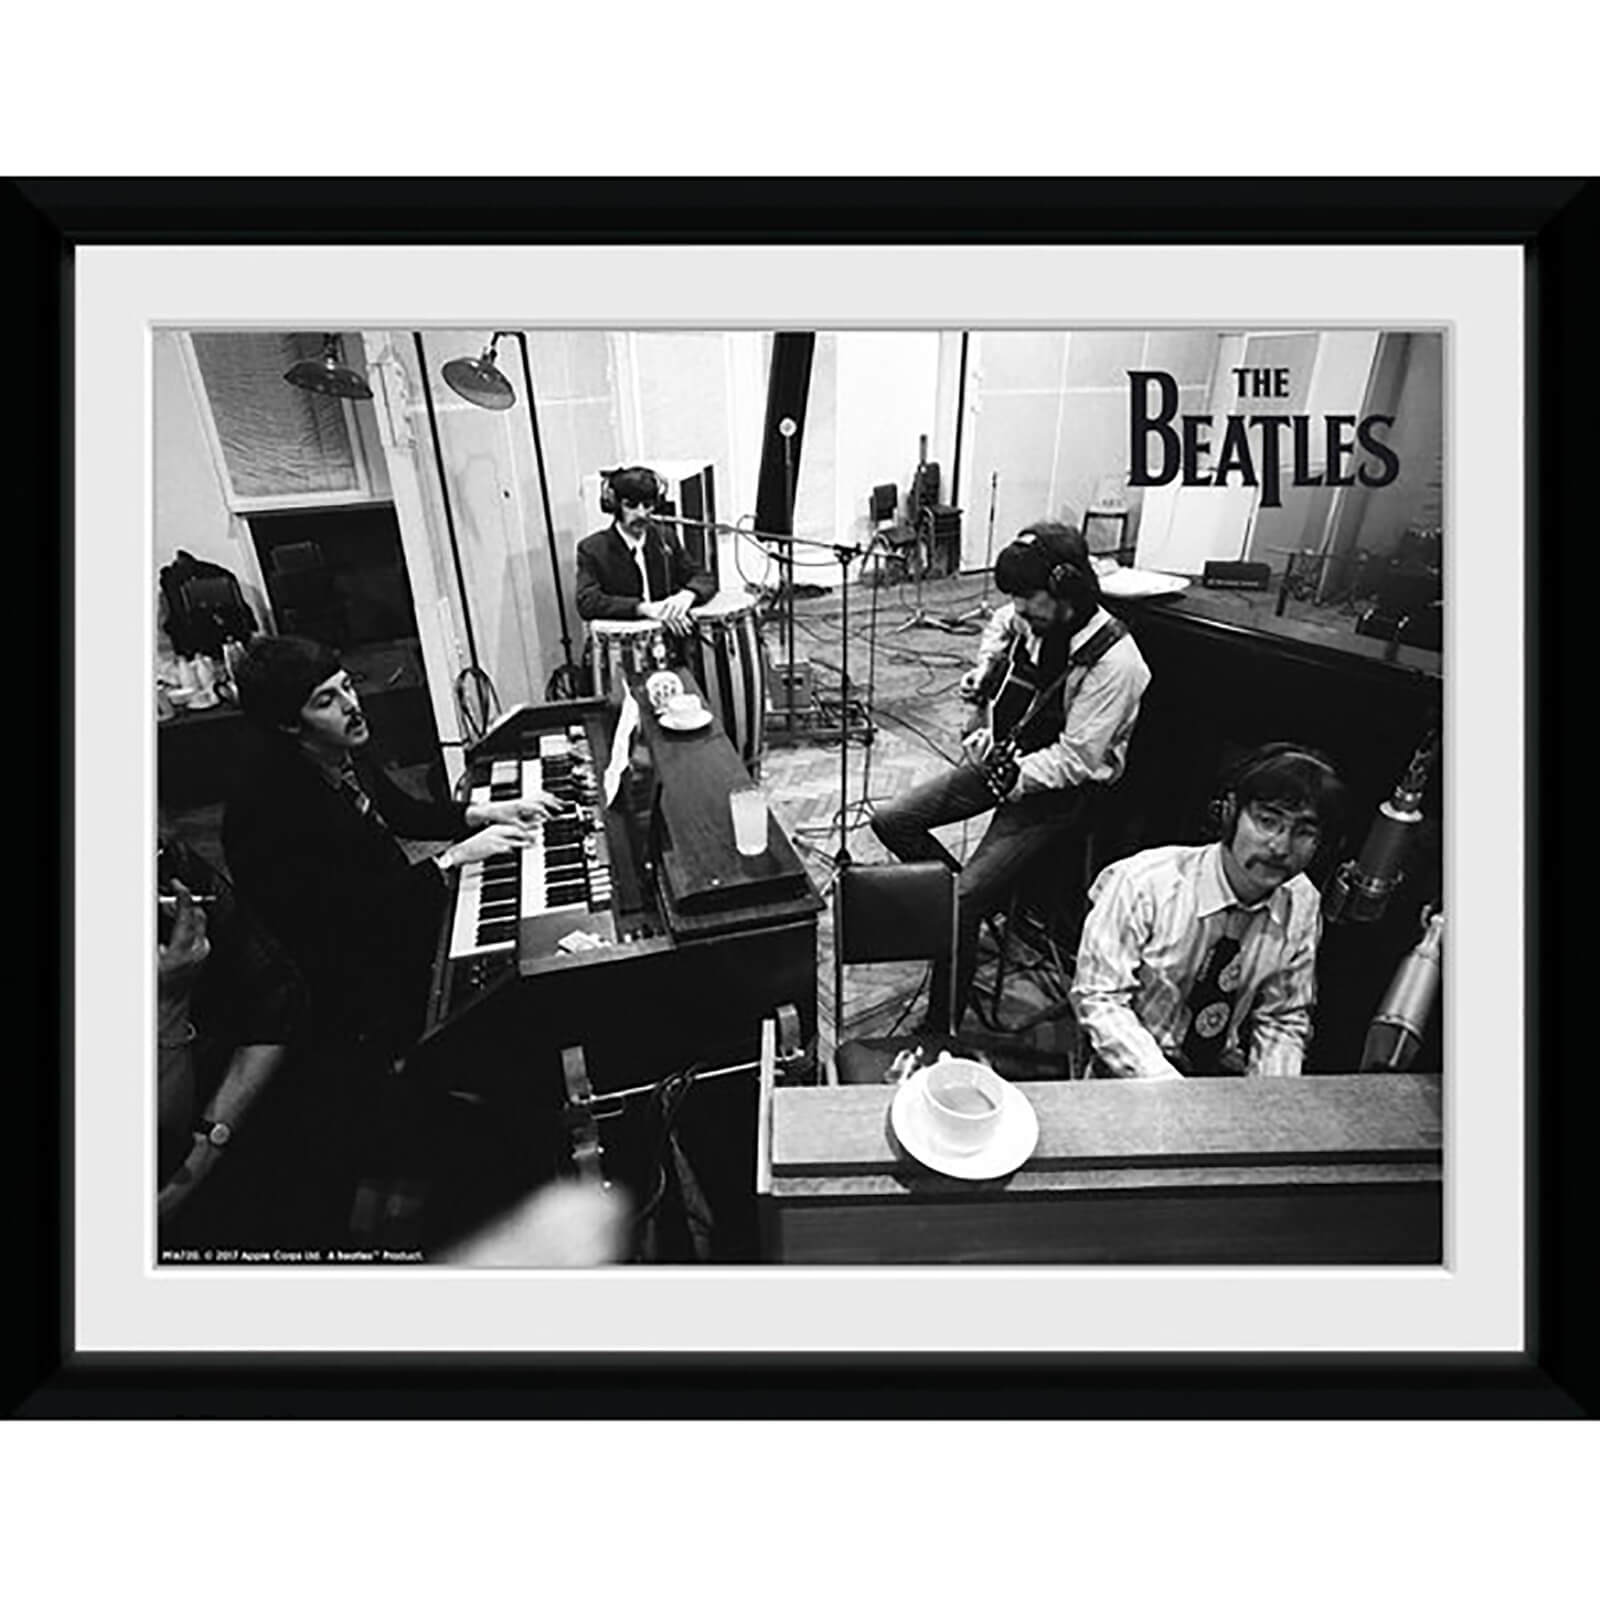 The Beatles Studio Framed Photograph 8 x 6 Inch